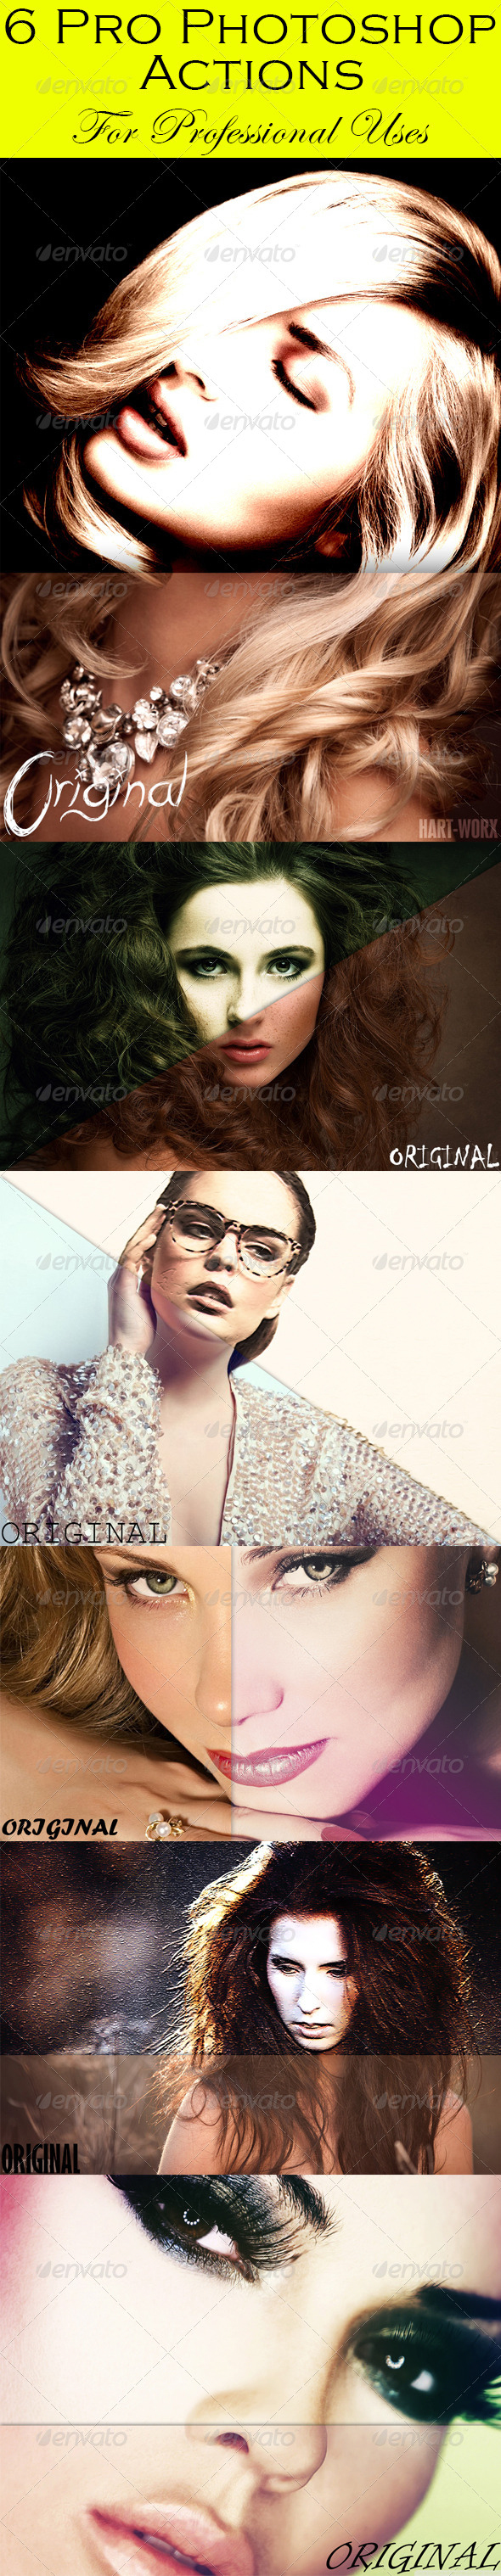 GraphicRiver 6 Pro Photoshop Actions 8046941